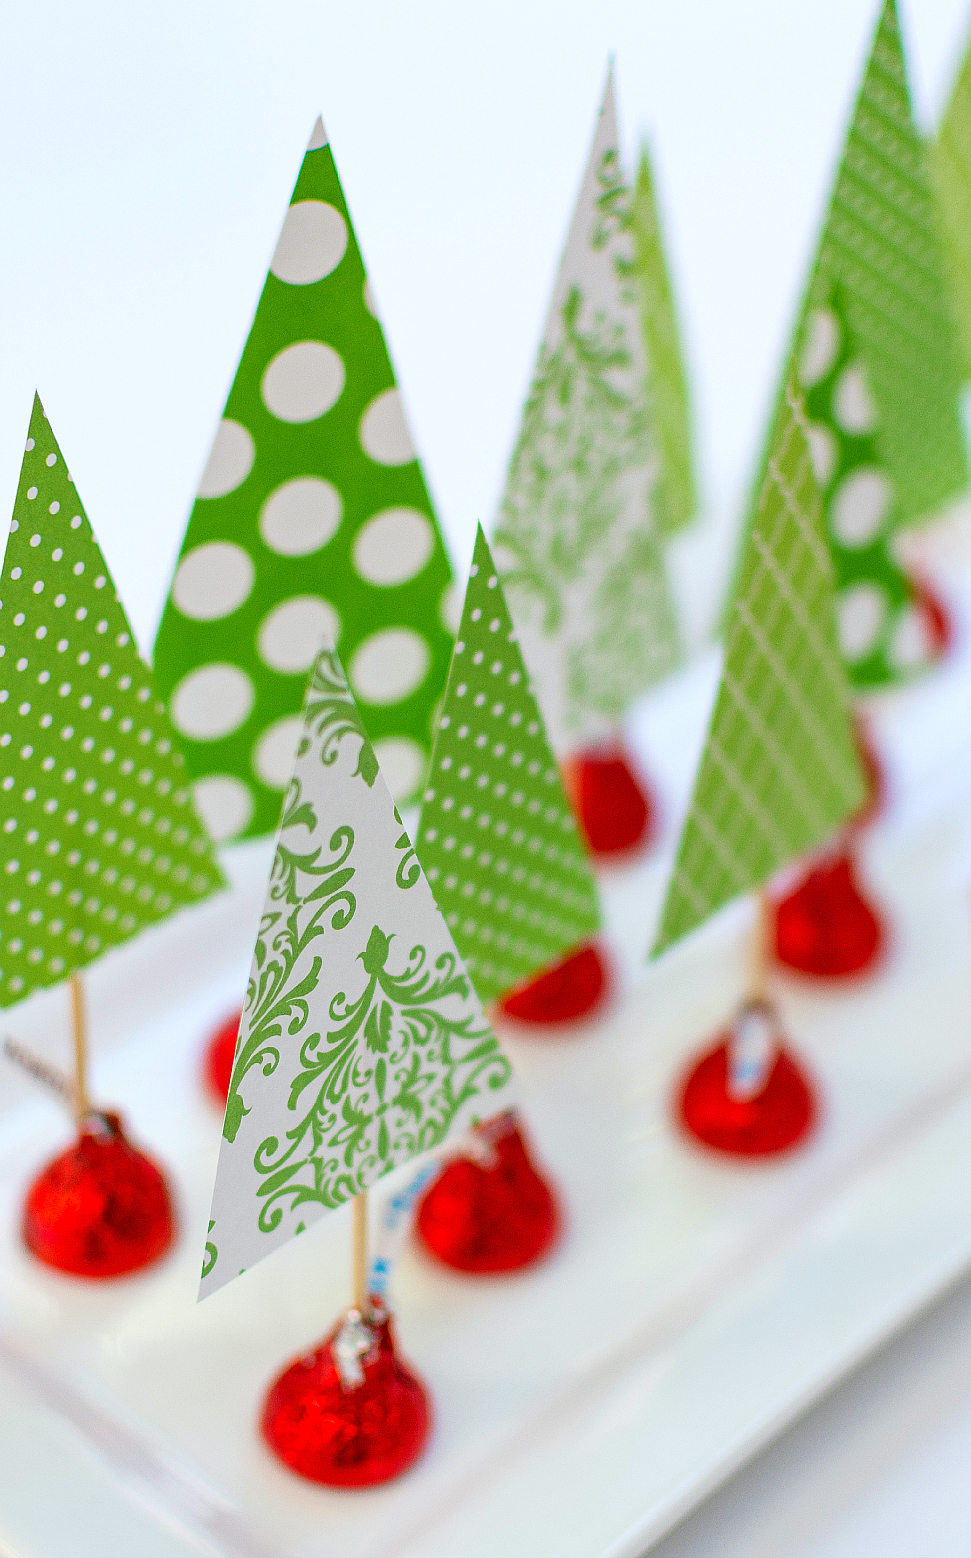 Christmas table decoration diy - 25 Forest Of Treats